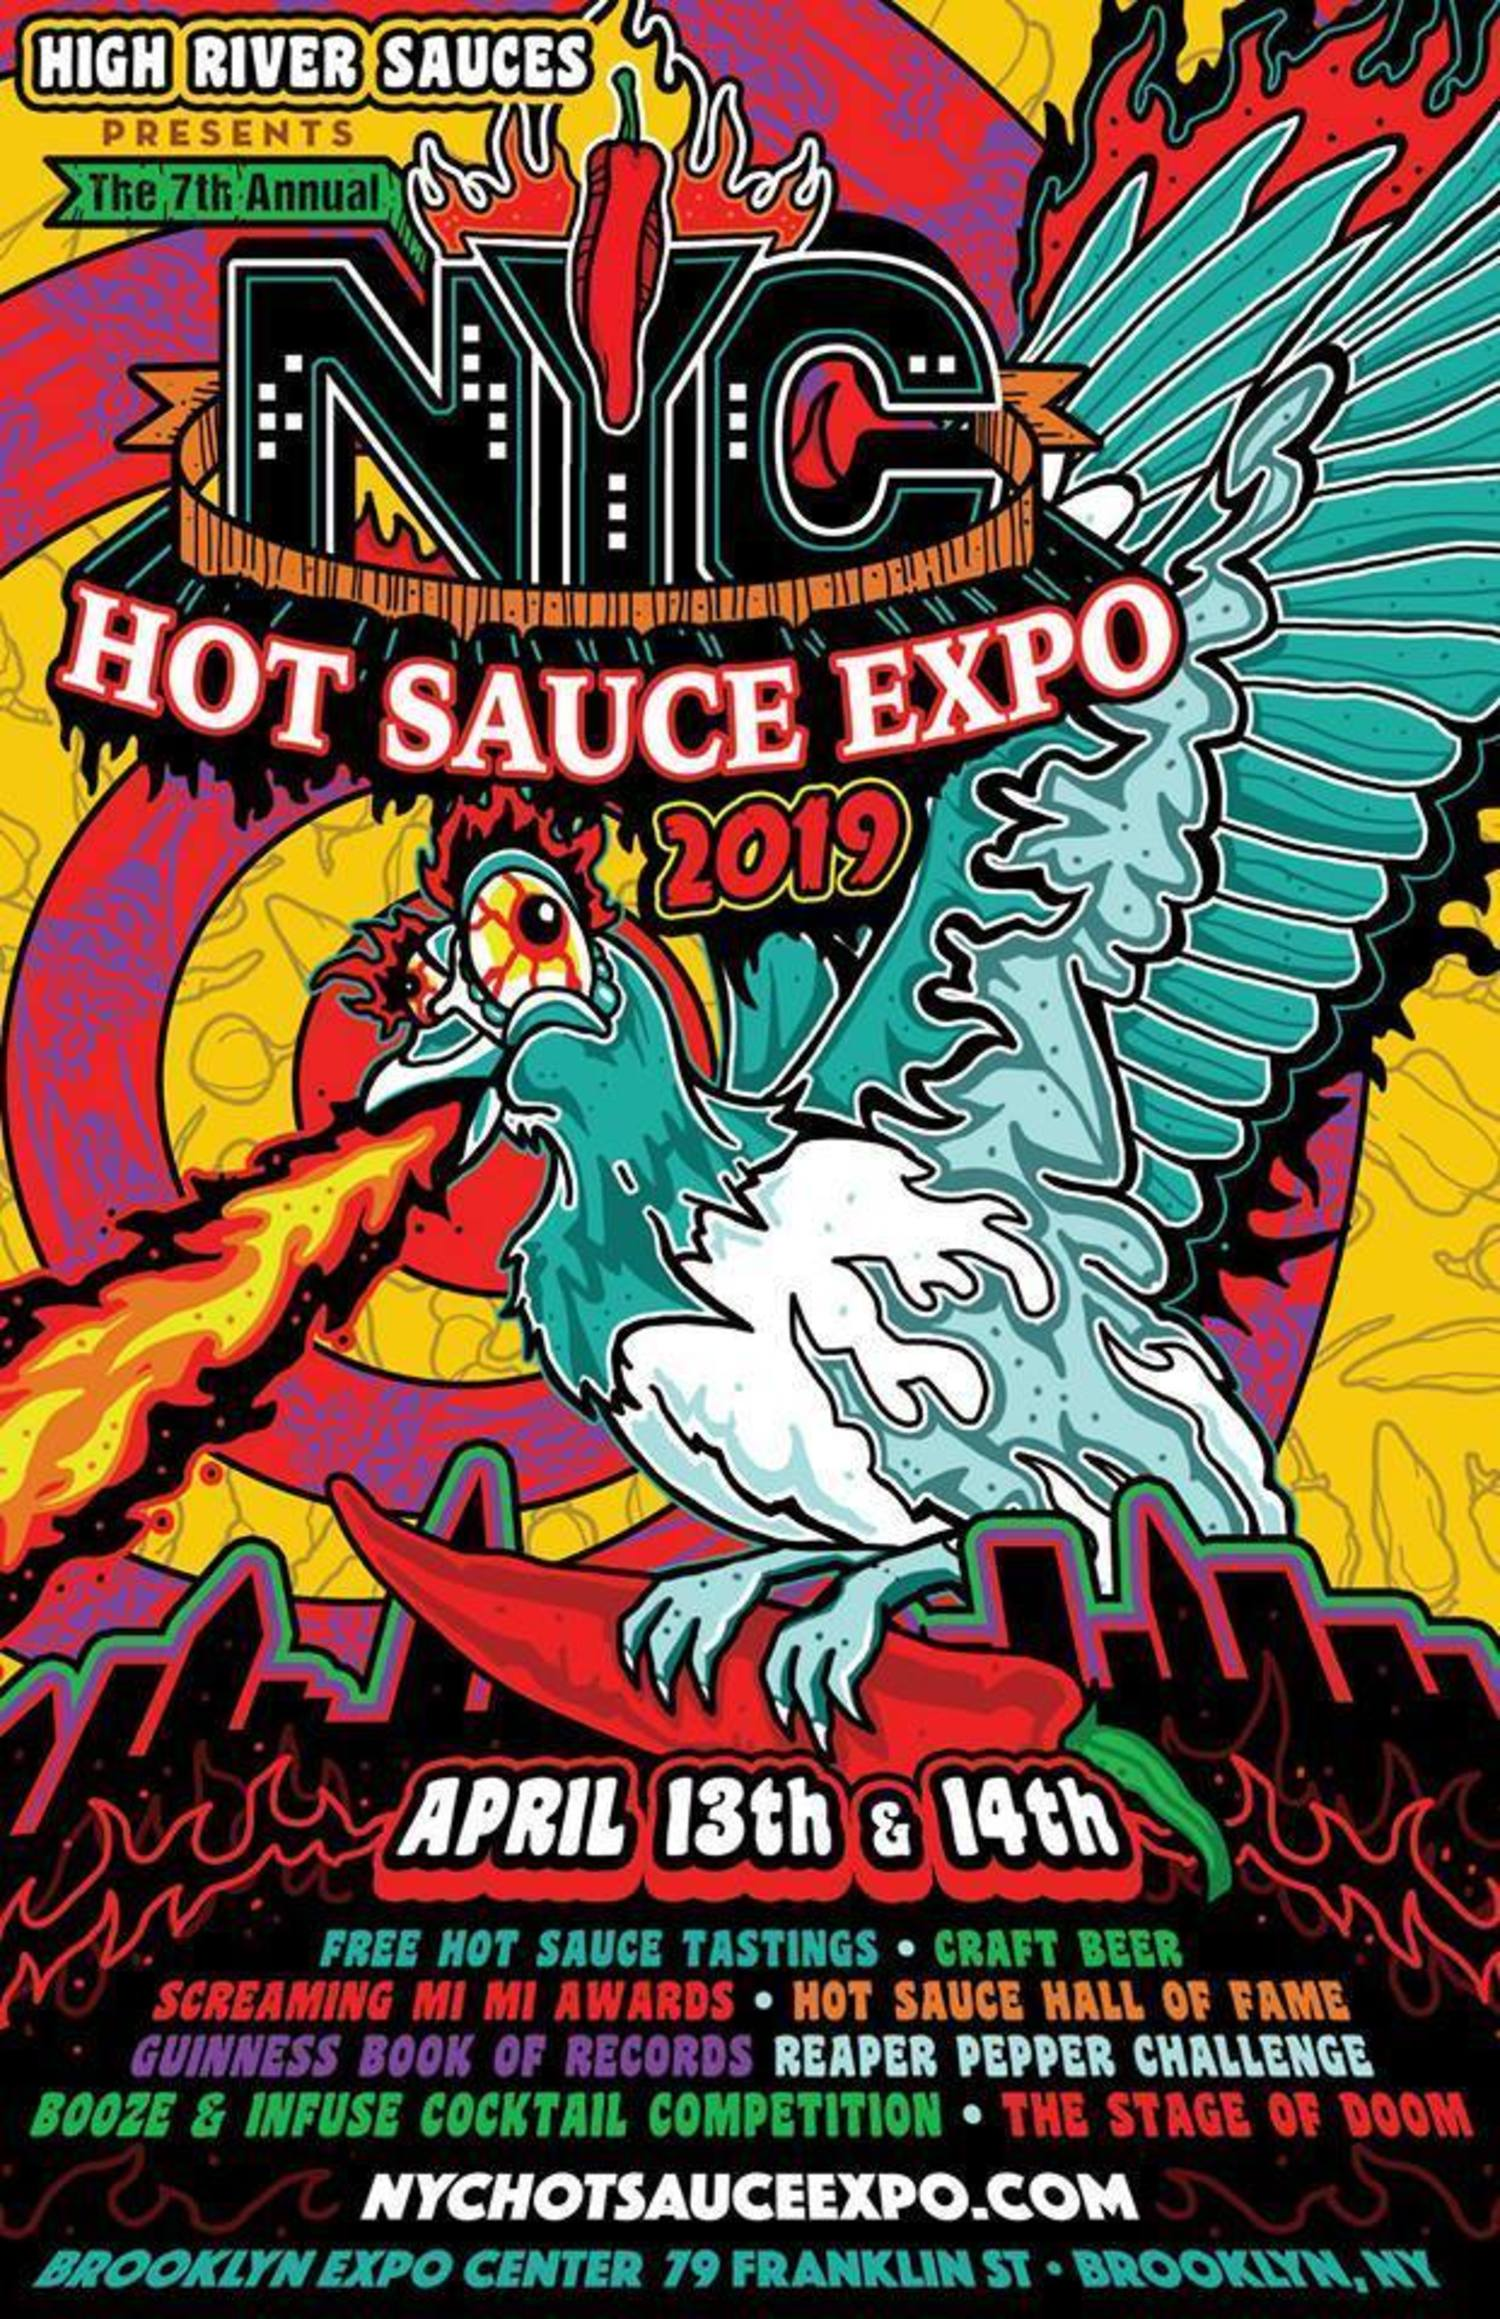 7th Annual New York City Hot Sauce Expo